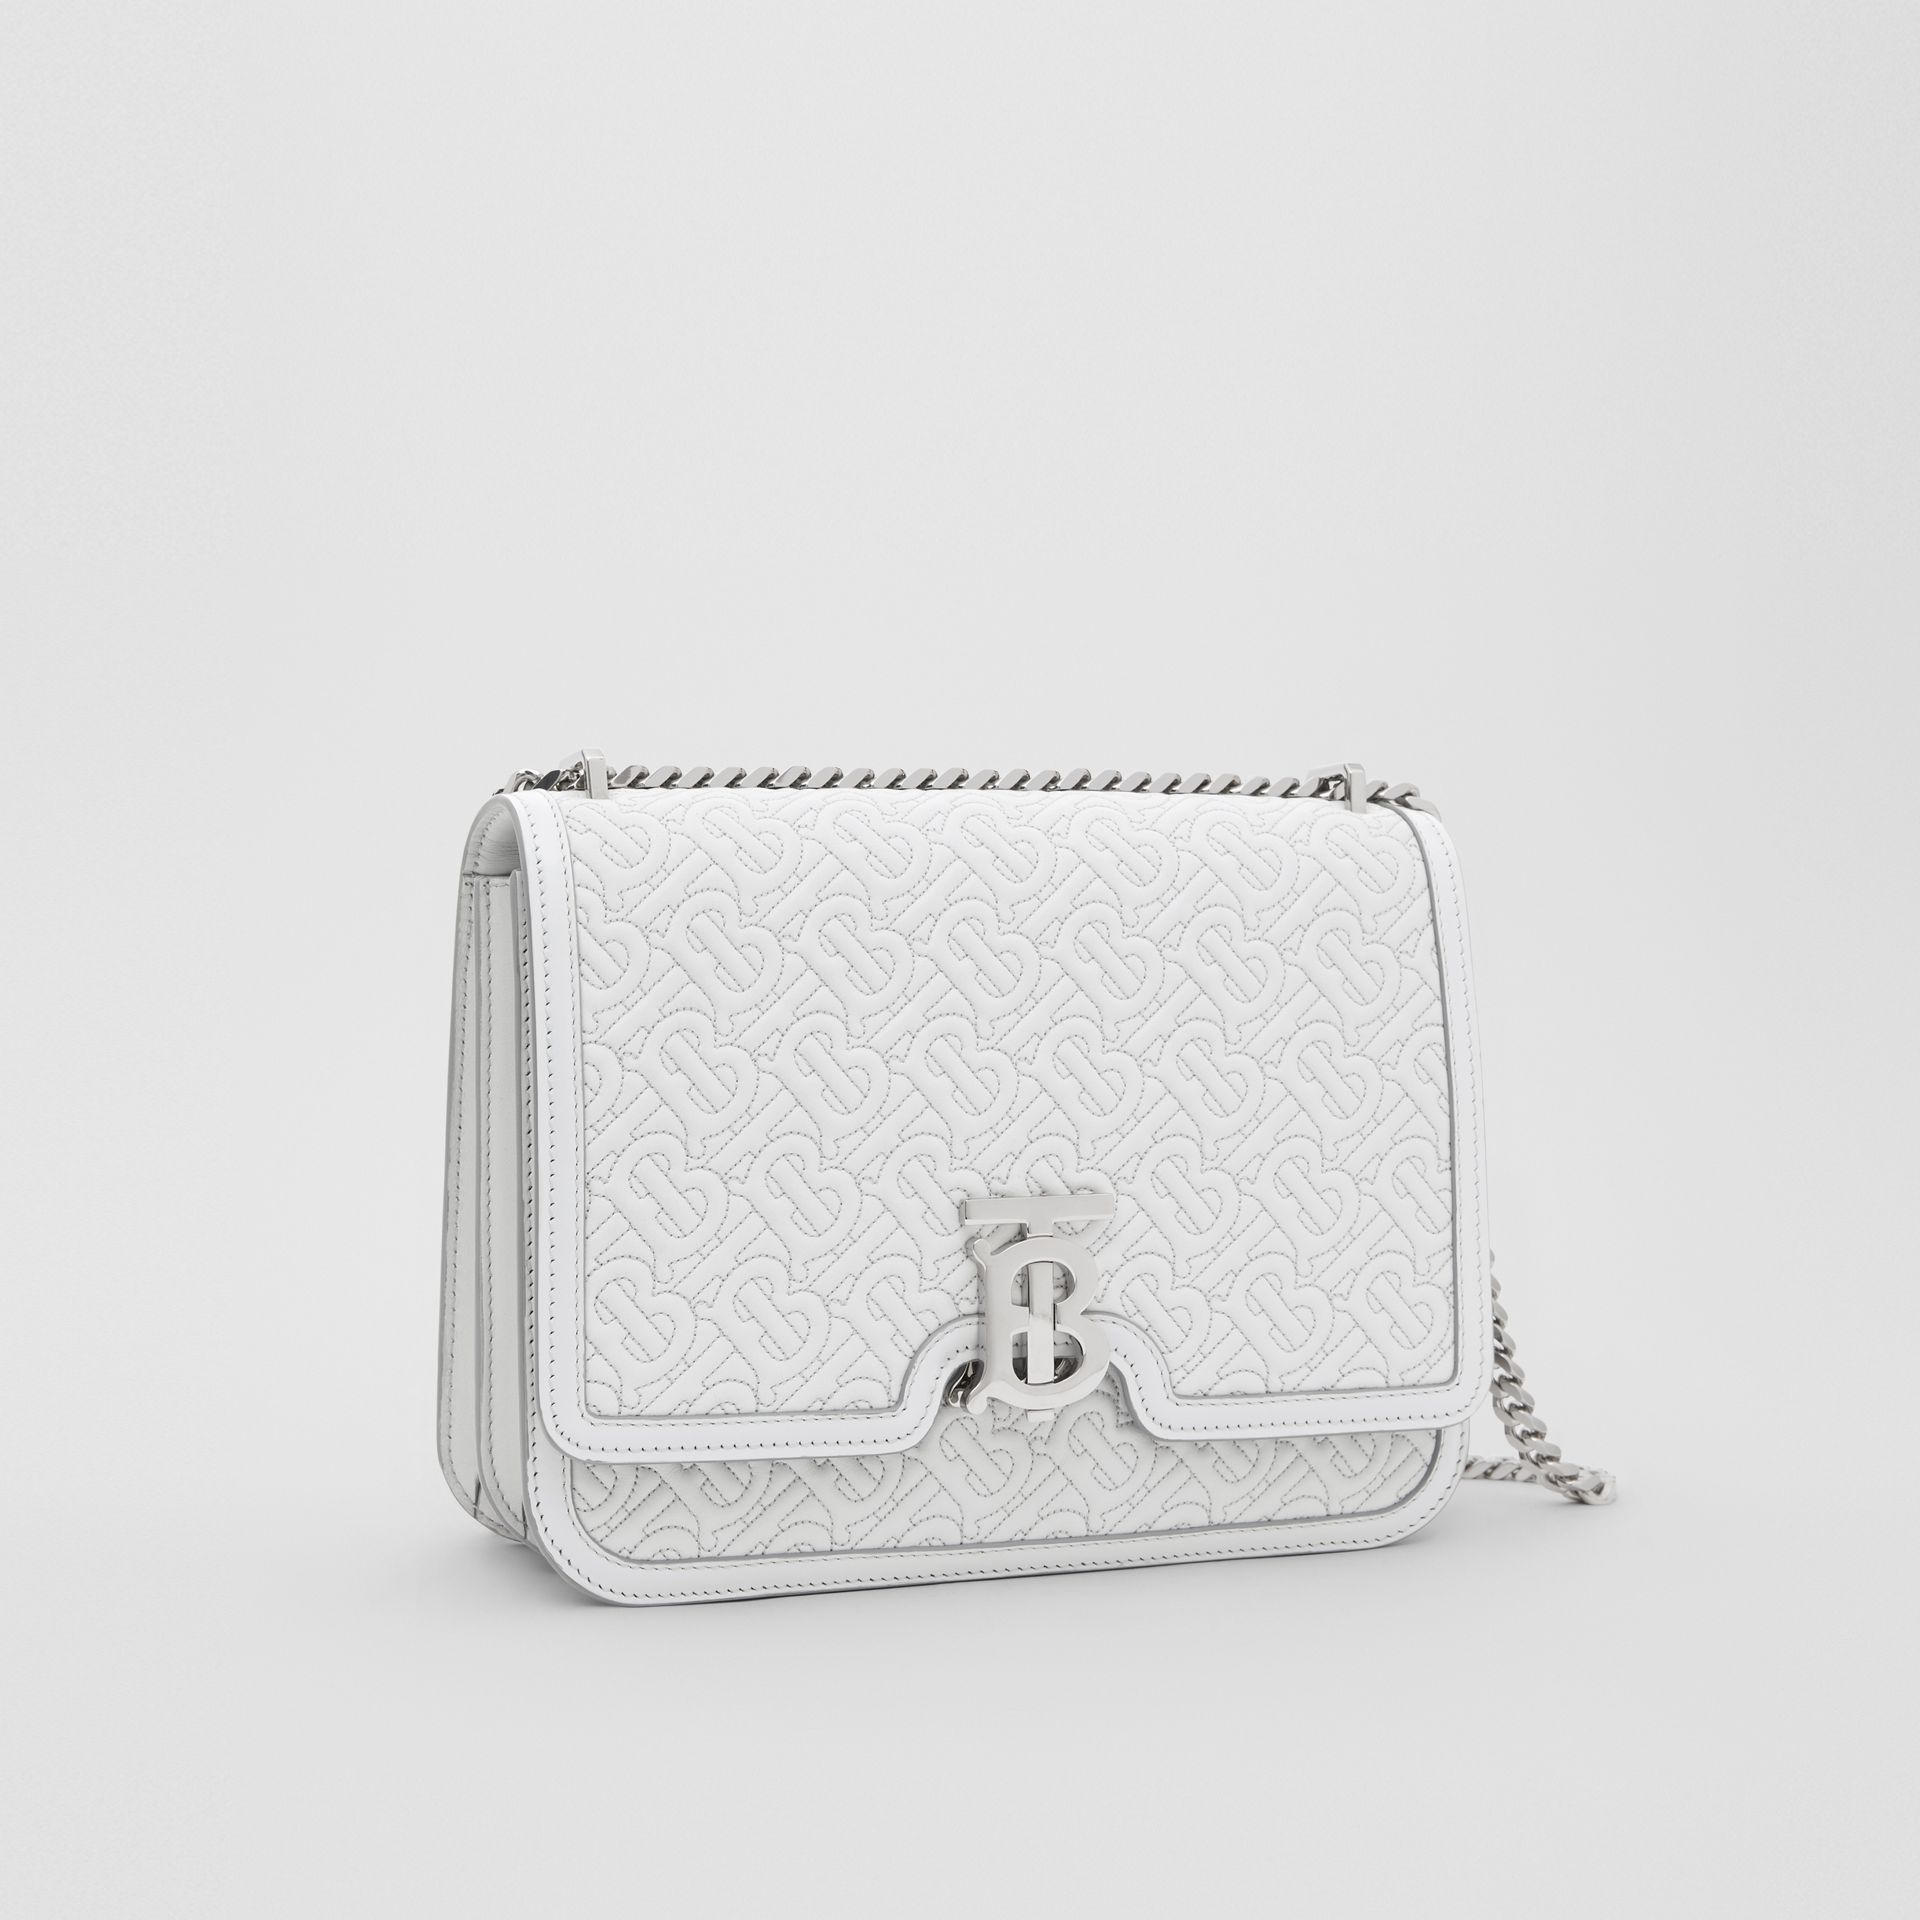 Medium Quilted Monogram Lambskin TB Bag in Light Pebble Grey - Women | Burberry - gallery image 6